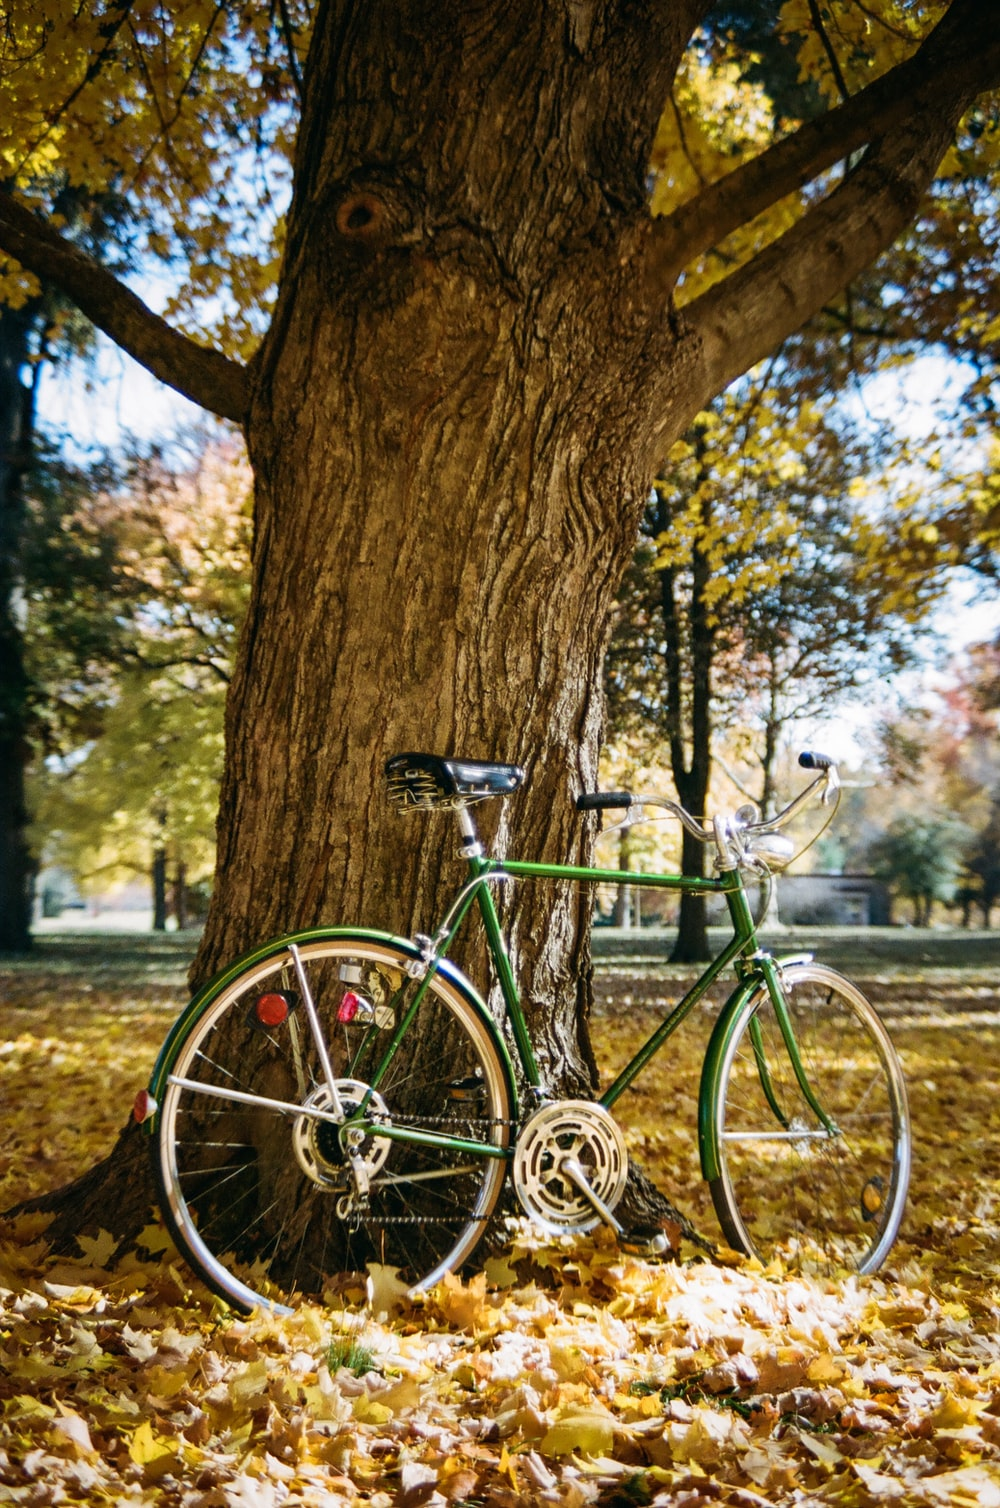 blue city bike leaning on brown tree trunk during daytime